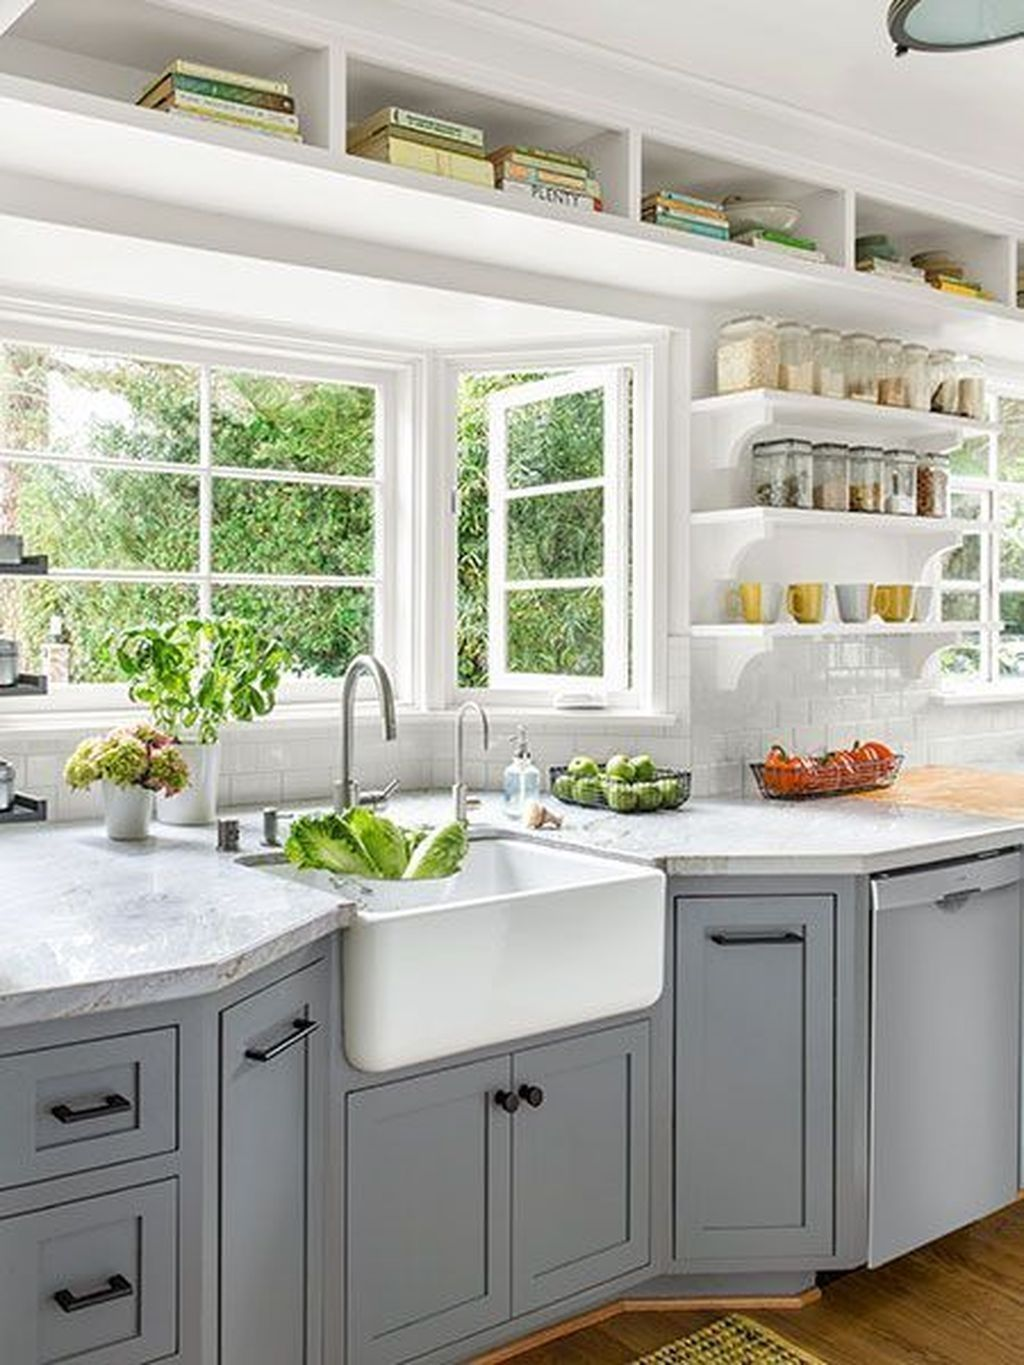 considering such steps for make awesome kitchen décor in 2019